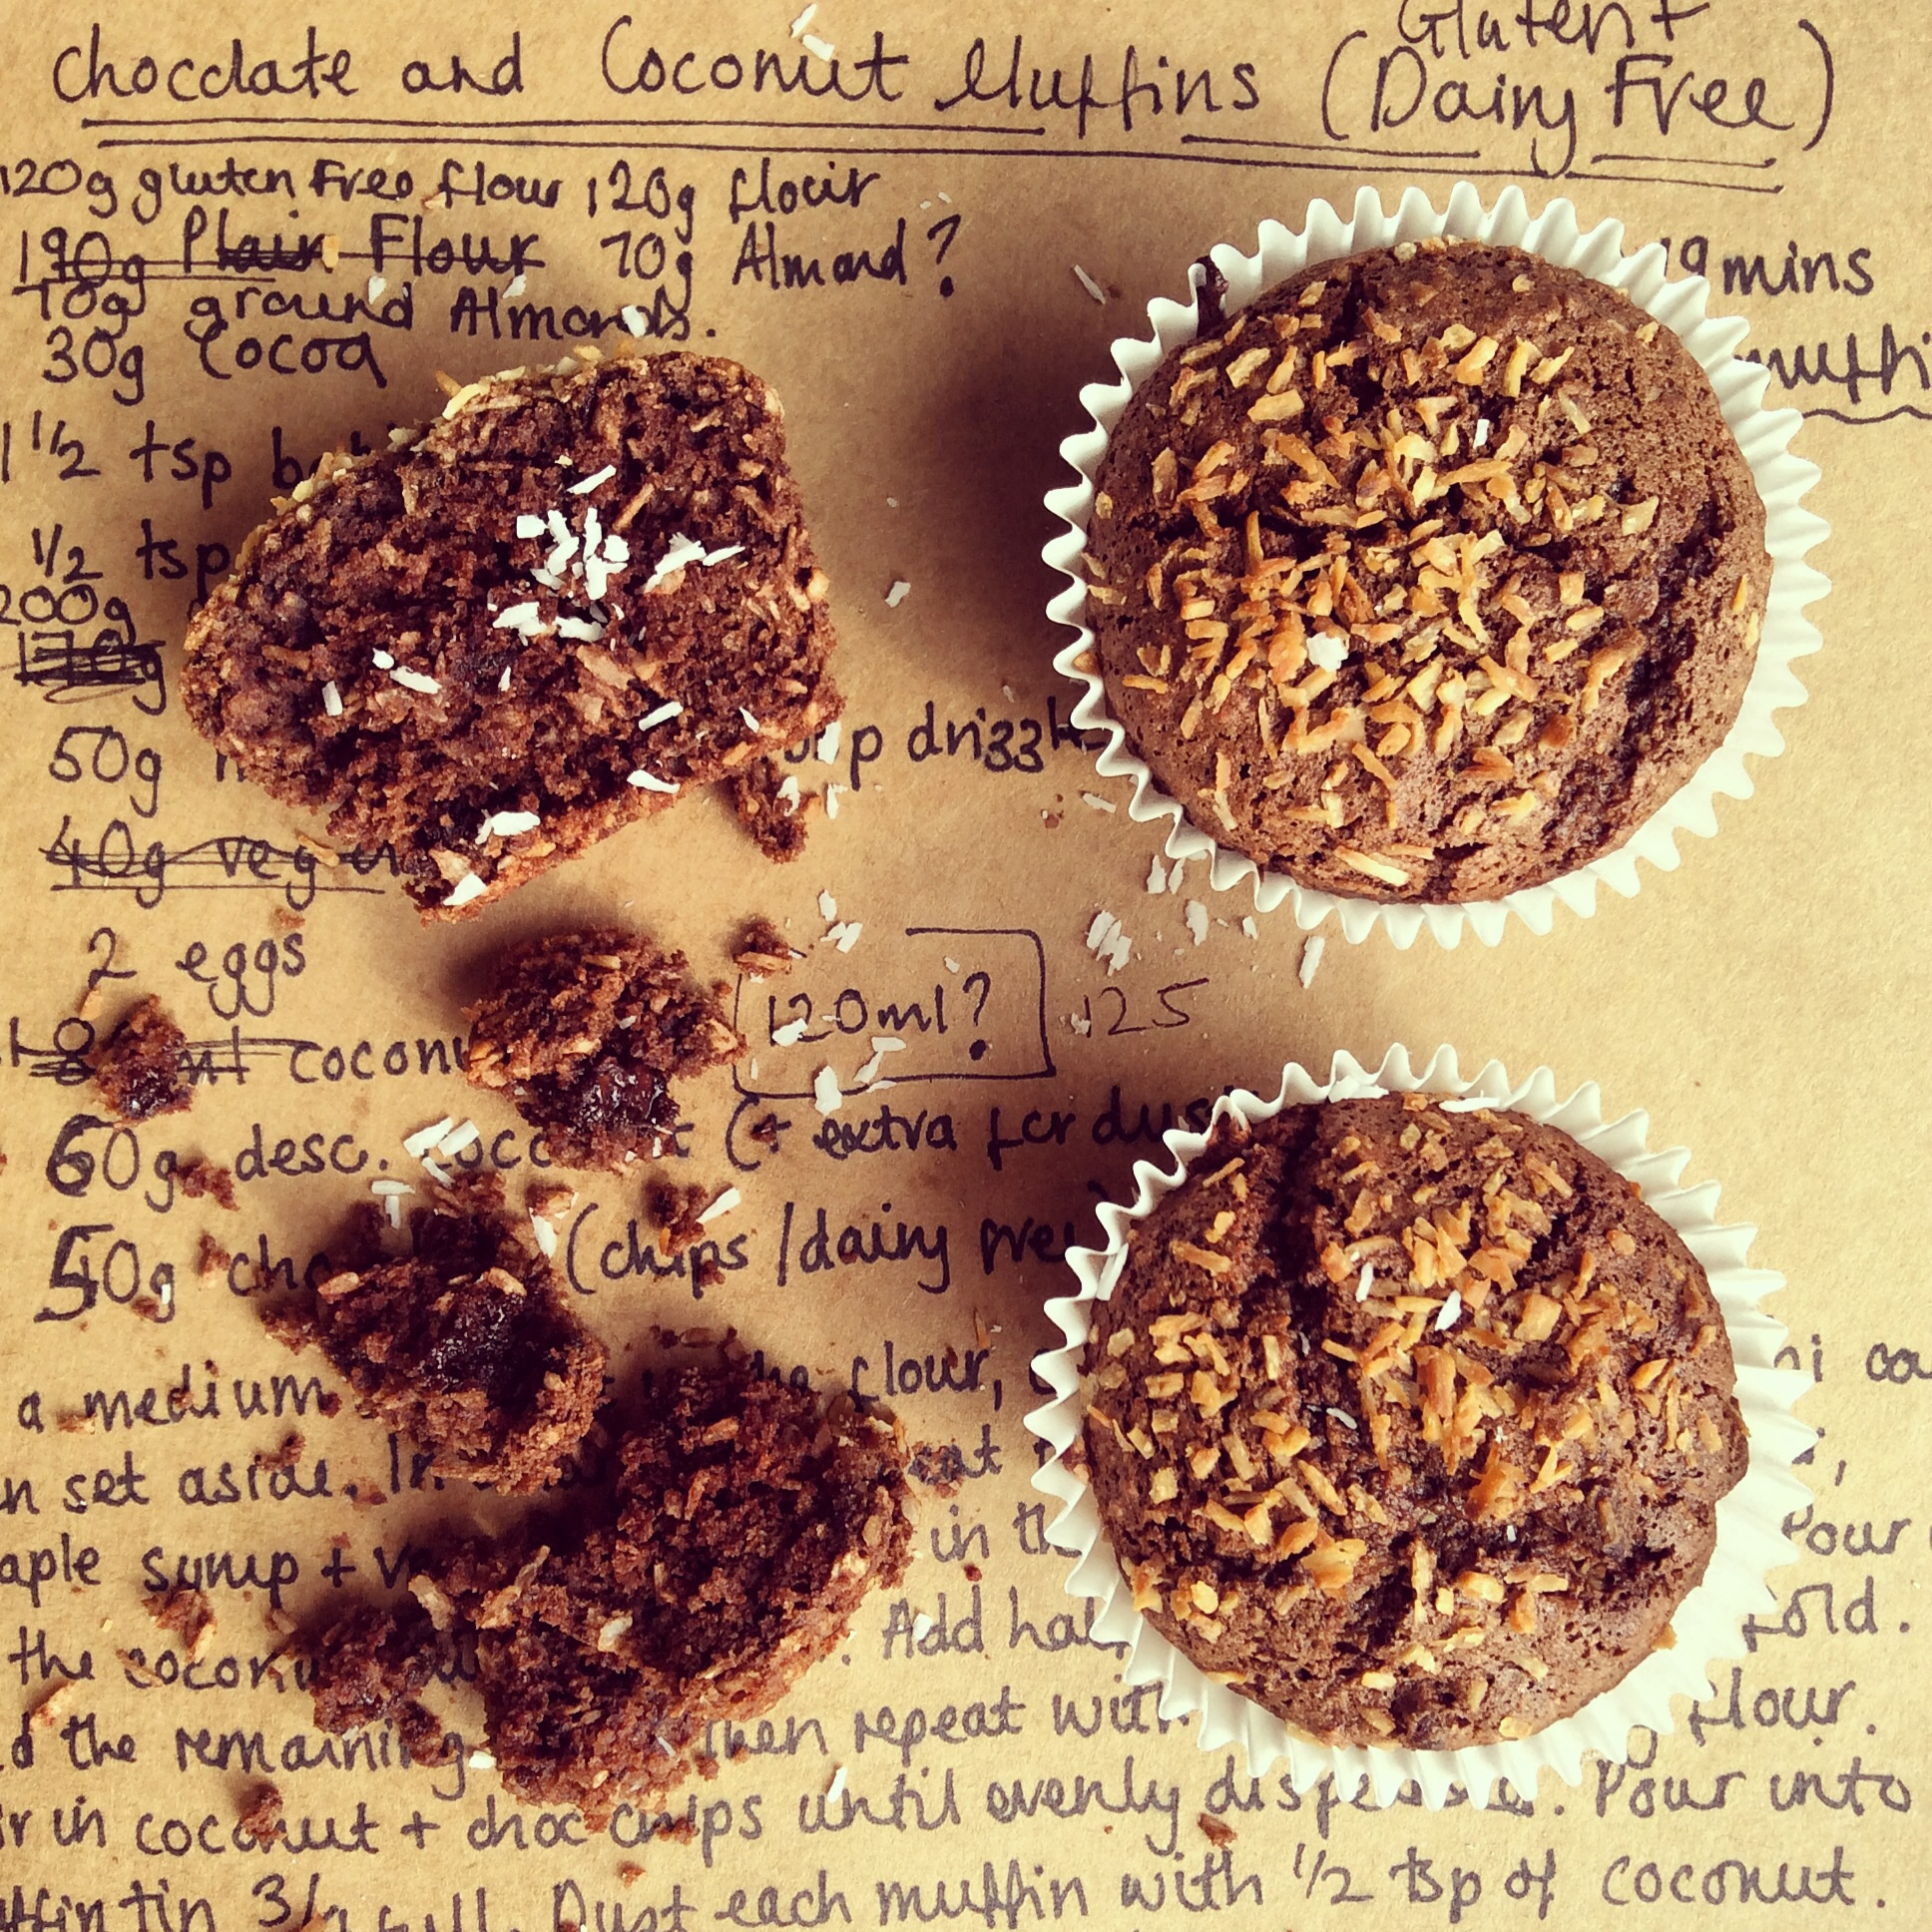 Choc and coc muffins